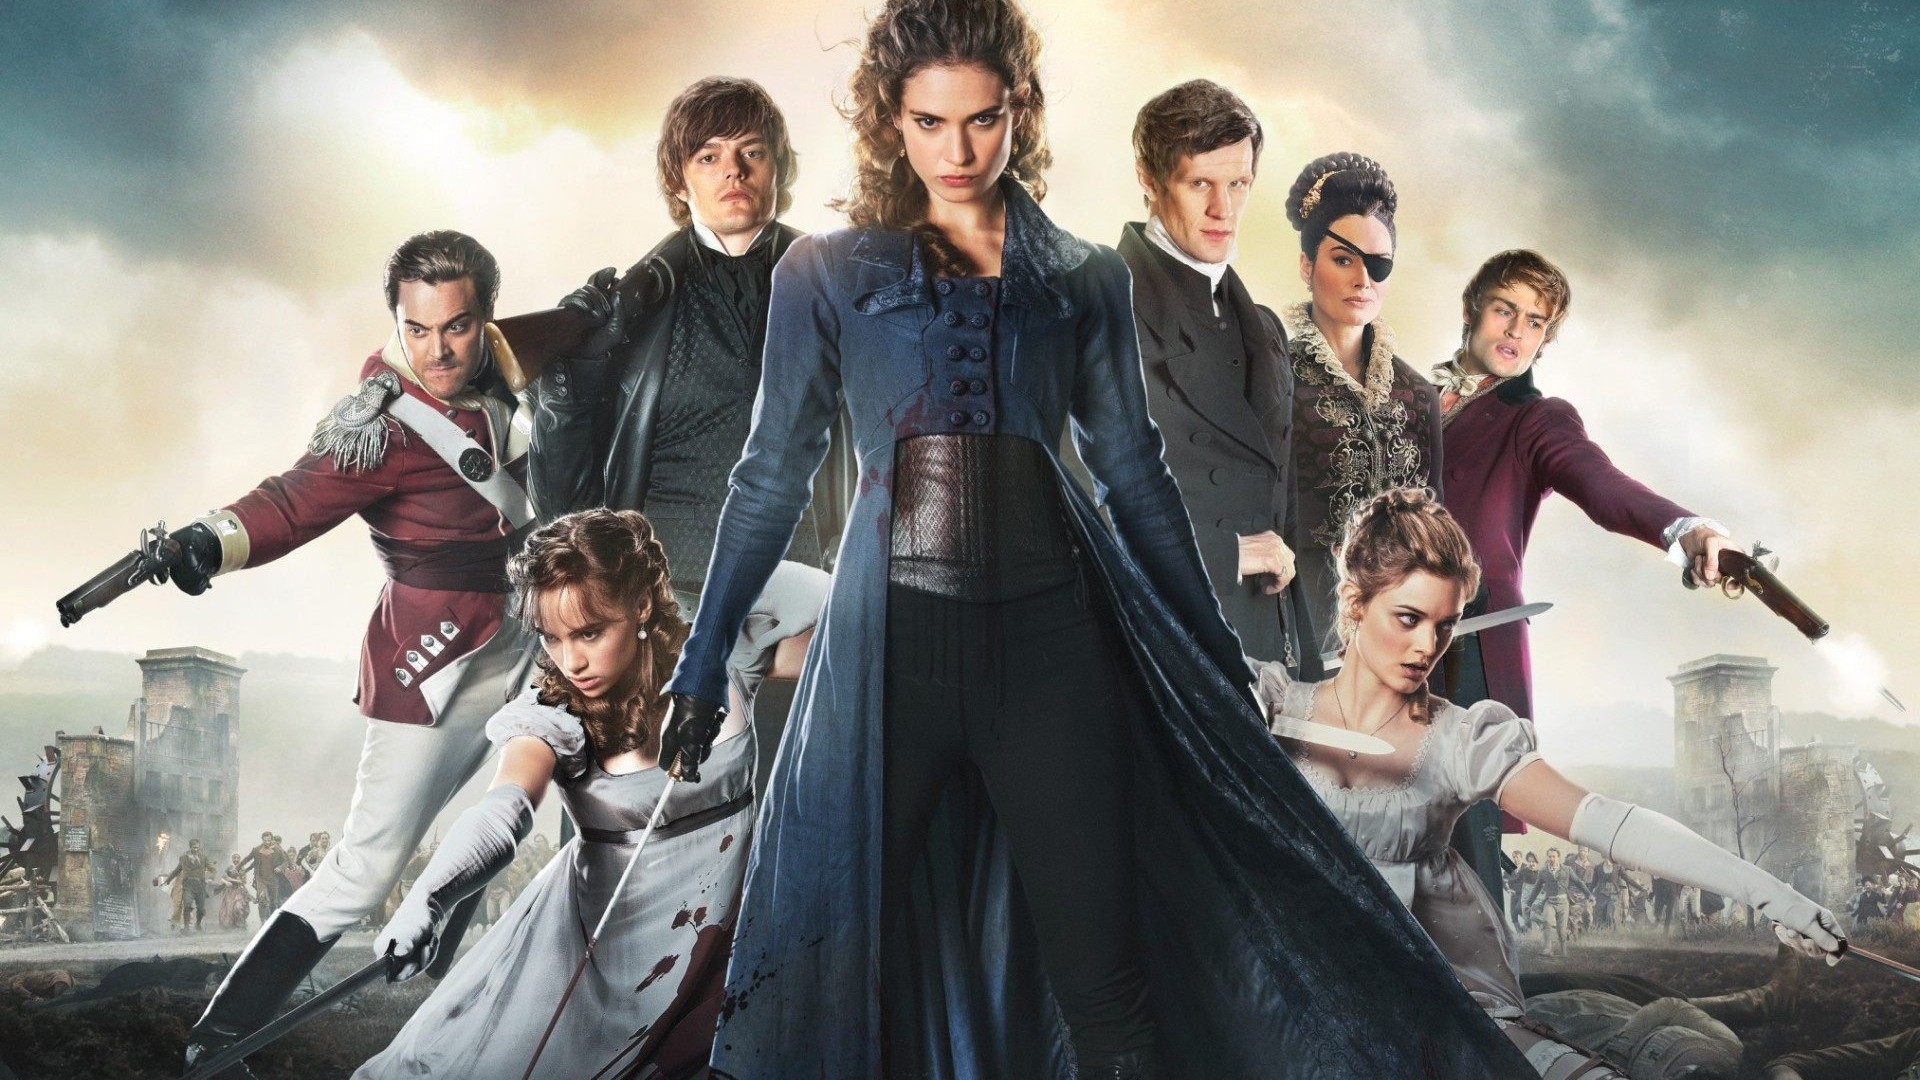 pride-and-prejudice-and-zombies-film-1920x1080-Need-iPhone-S-Plus-Backg-wallpaper-wpc5808223